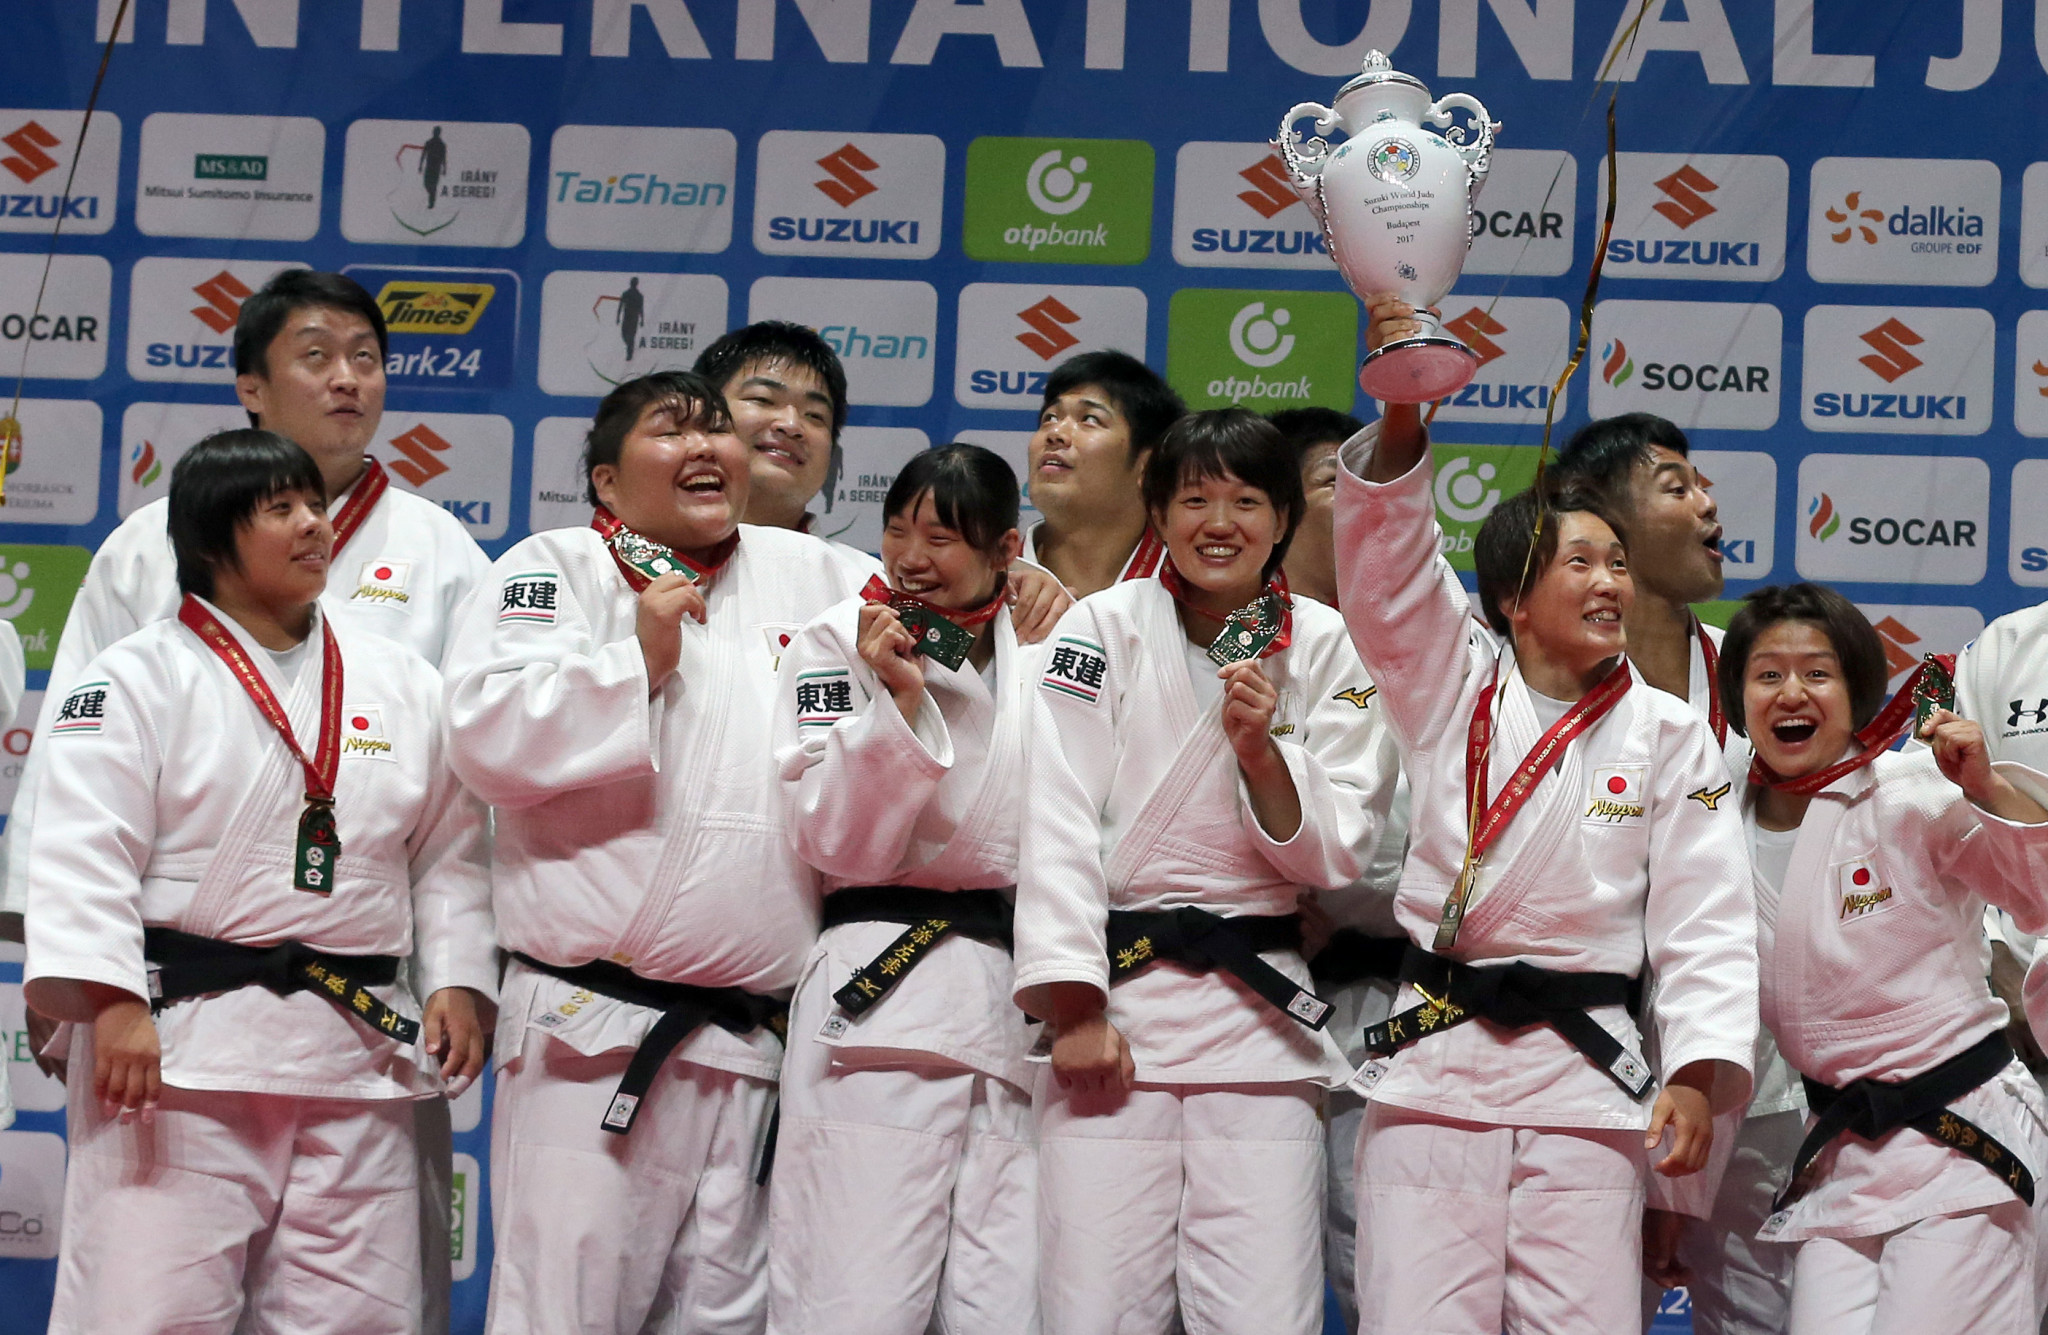 Japan win first mixed team title at IJF World Championships